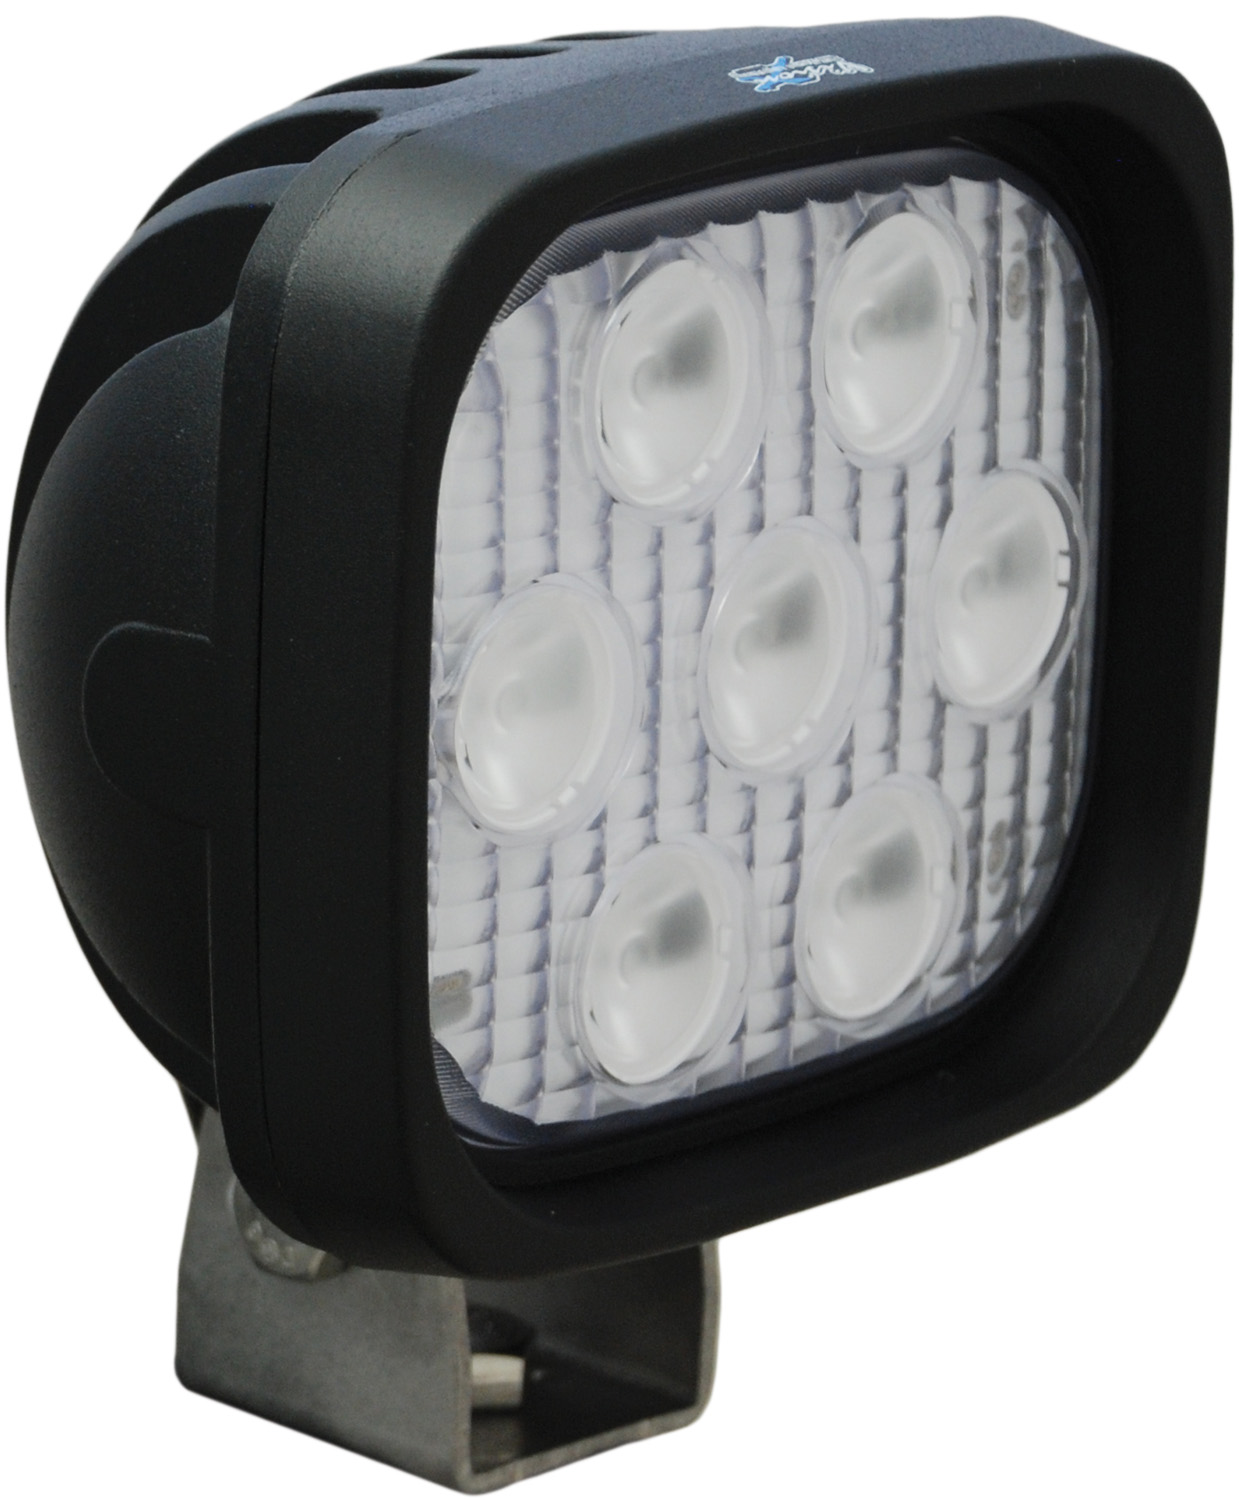 4 inch SQUARE UTILITY MARKET BLACK 7 3W LED'S 60ç EXTRA WIDE